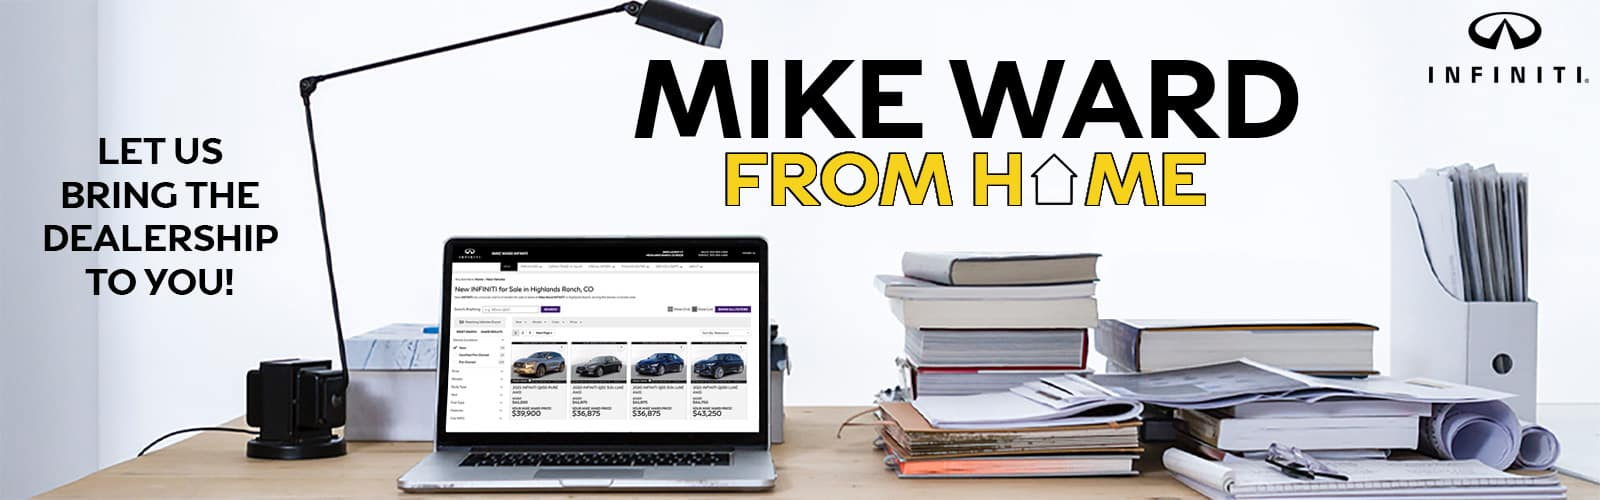 Mike Ward From Home